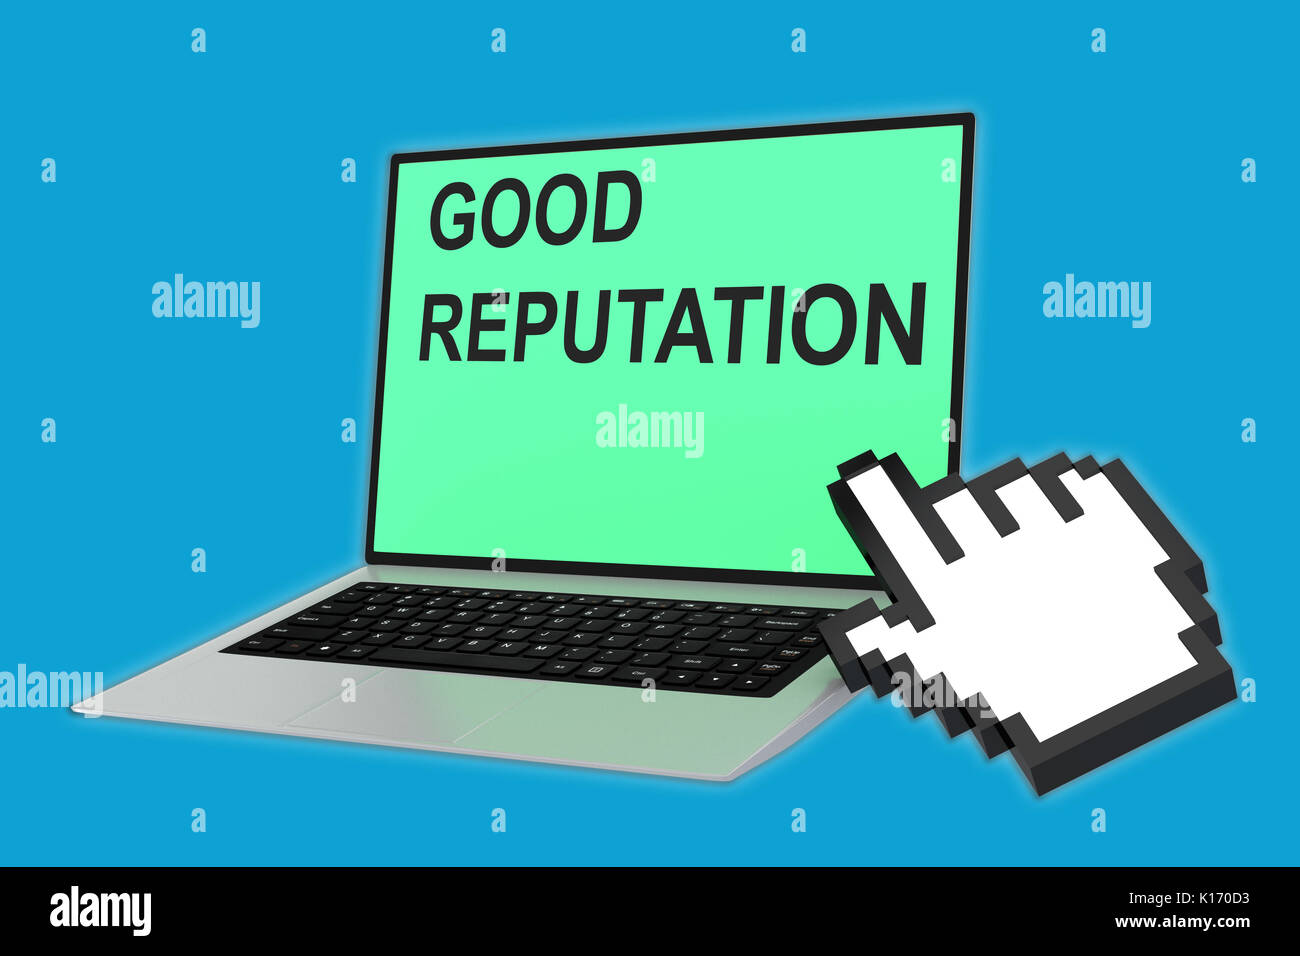 3D illustration of 'GOOD REPUTATION' script with pointing hand icon pointing at the laptop screen - Stock Image